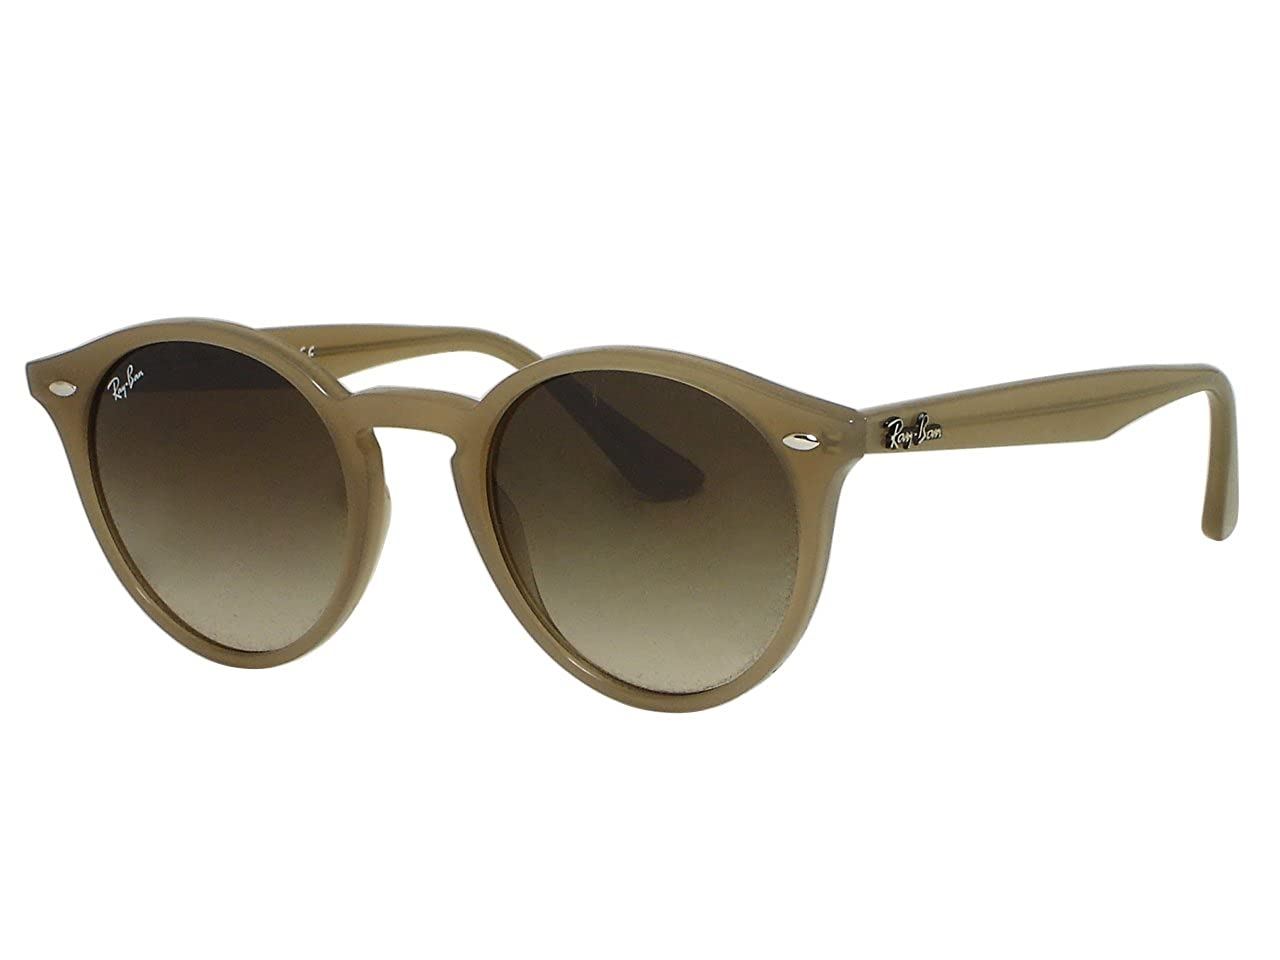 c74d703559a Amazon.com  Ray Ban RB2180 Round 6166 13 Turtledove Sunglasses 49mm   Clothing